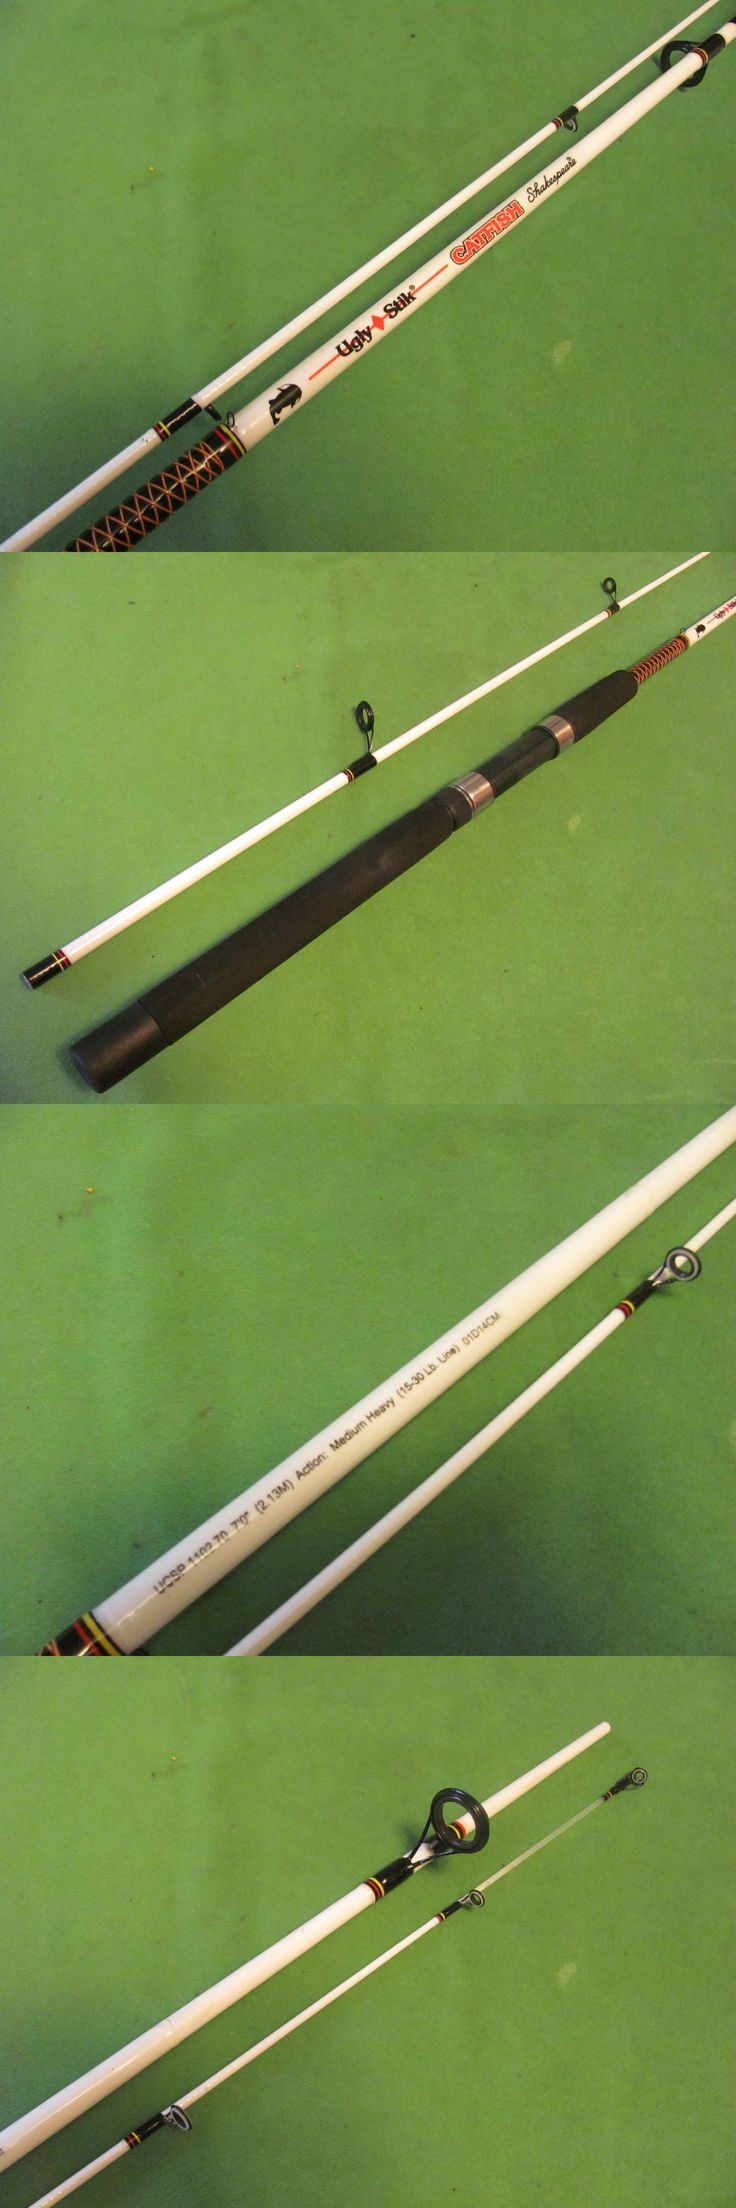 Spinning Rods 36150: Shakespeare Ugly Stik Catfish 7 Medium Heavy Spinning Rod.( Ucsp110270 ) BUY IT NOW ONLY: $47.95